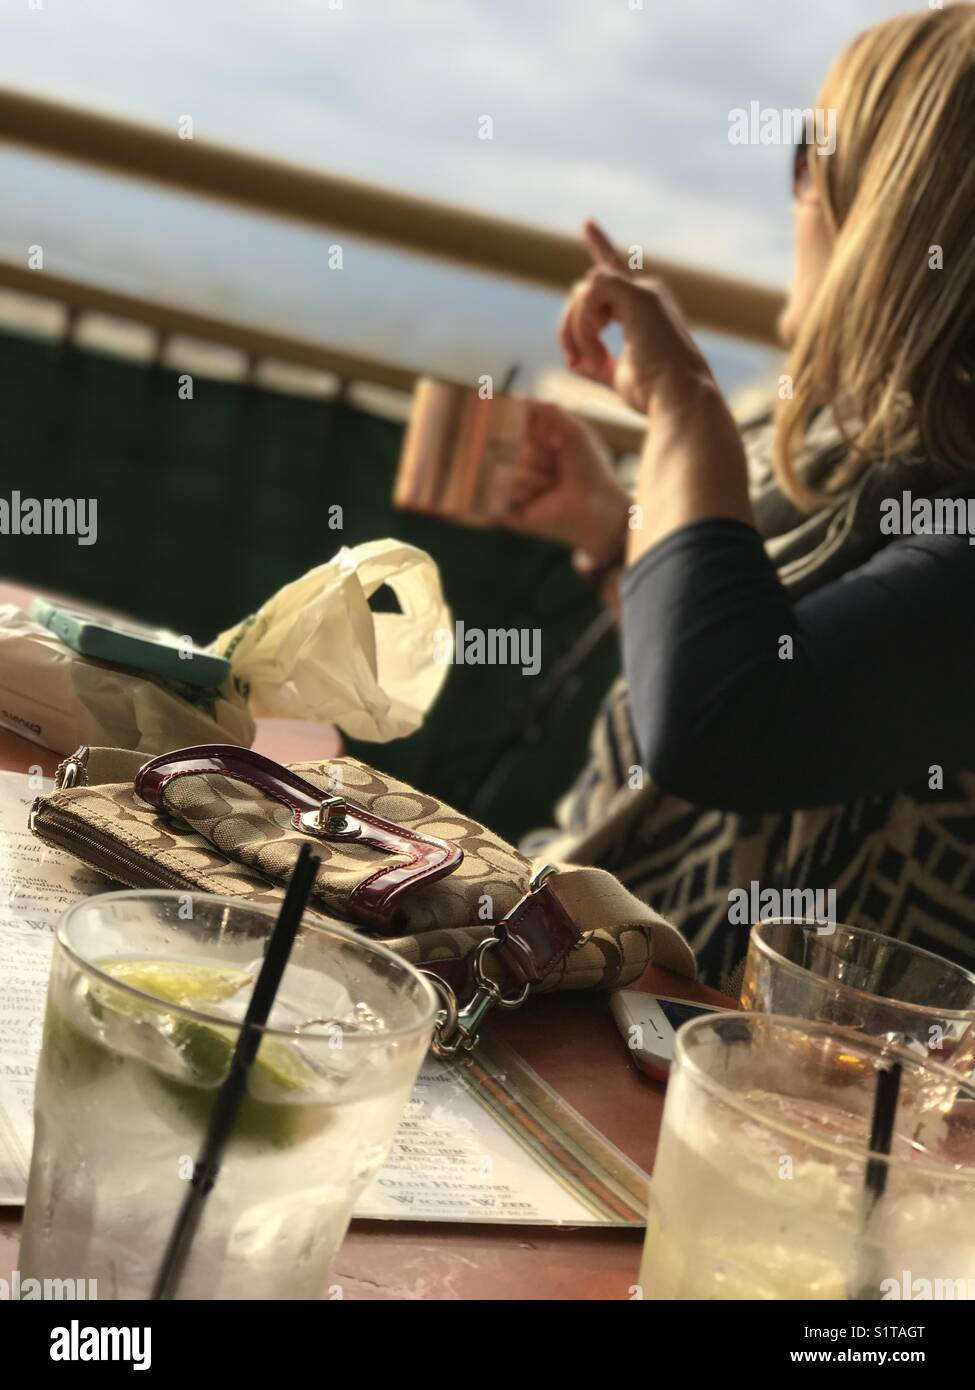 Woman Enjoying a Cocktail on a Balcony in Asheville, NC - Stock Image